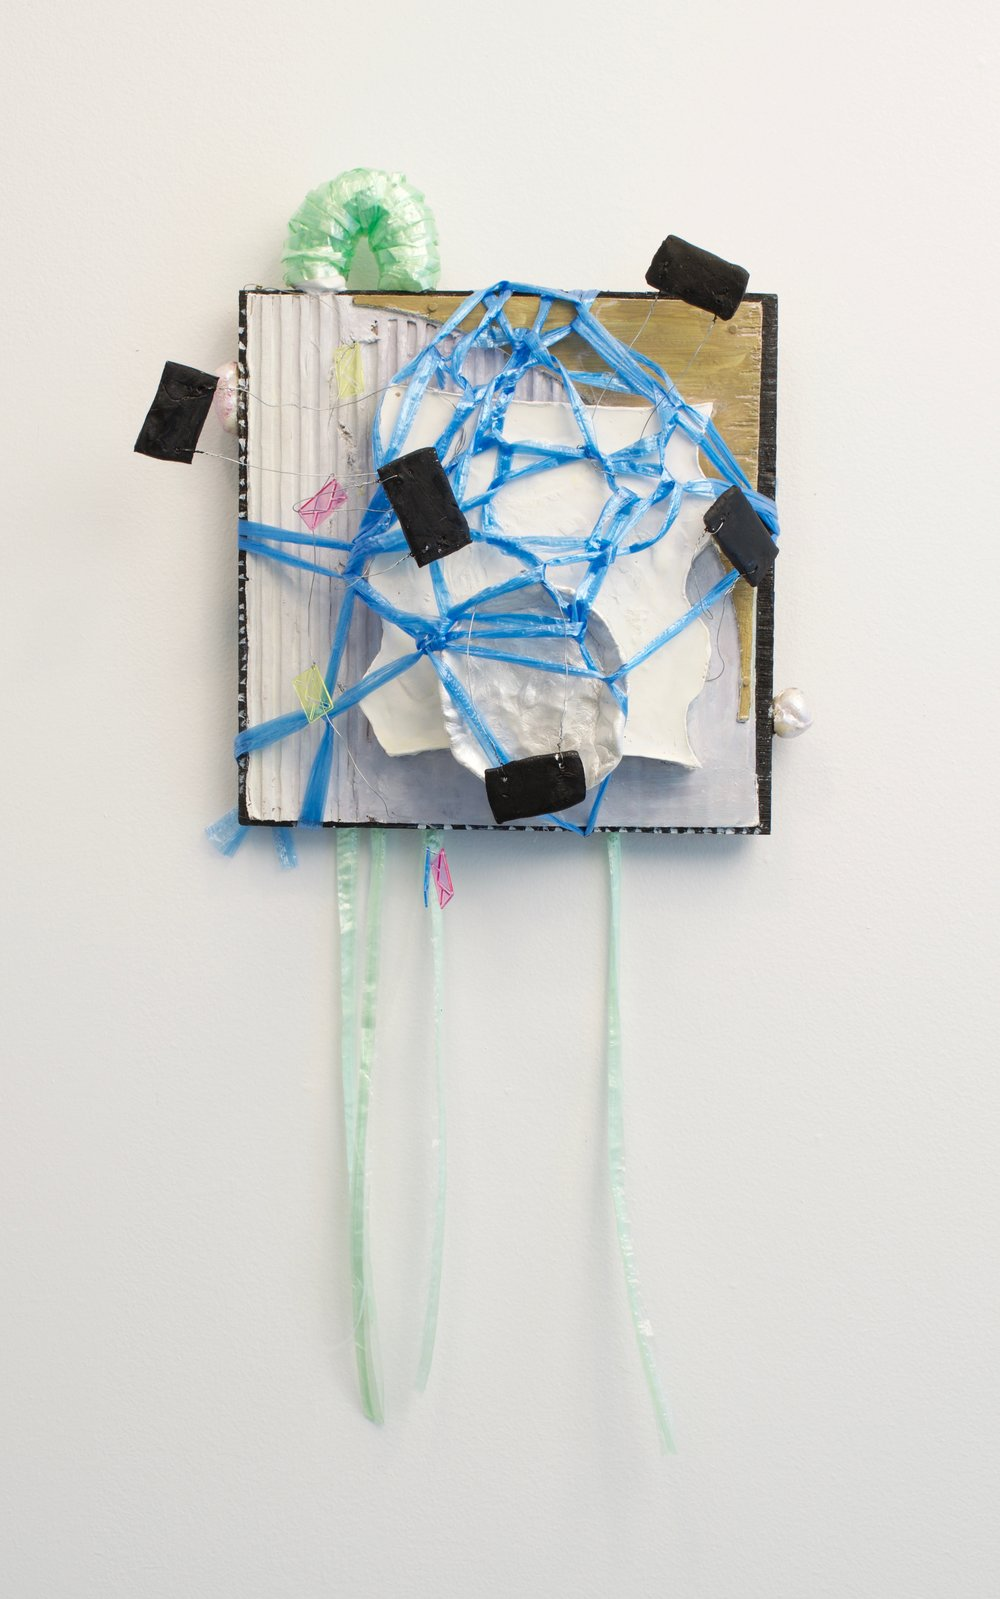 Fukuko Harris, Mardi Gras, 2016. Plaster, Clay, Synthetic Strings, Paper Clips, and Foam on Canvas. 12 x 14 inches.